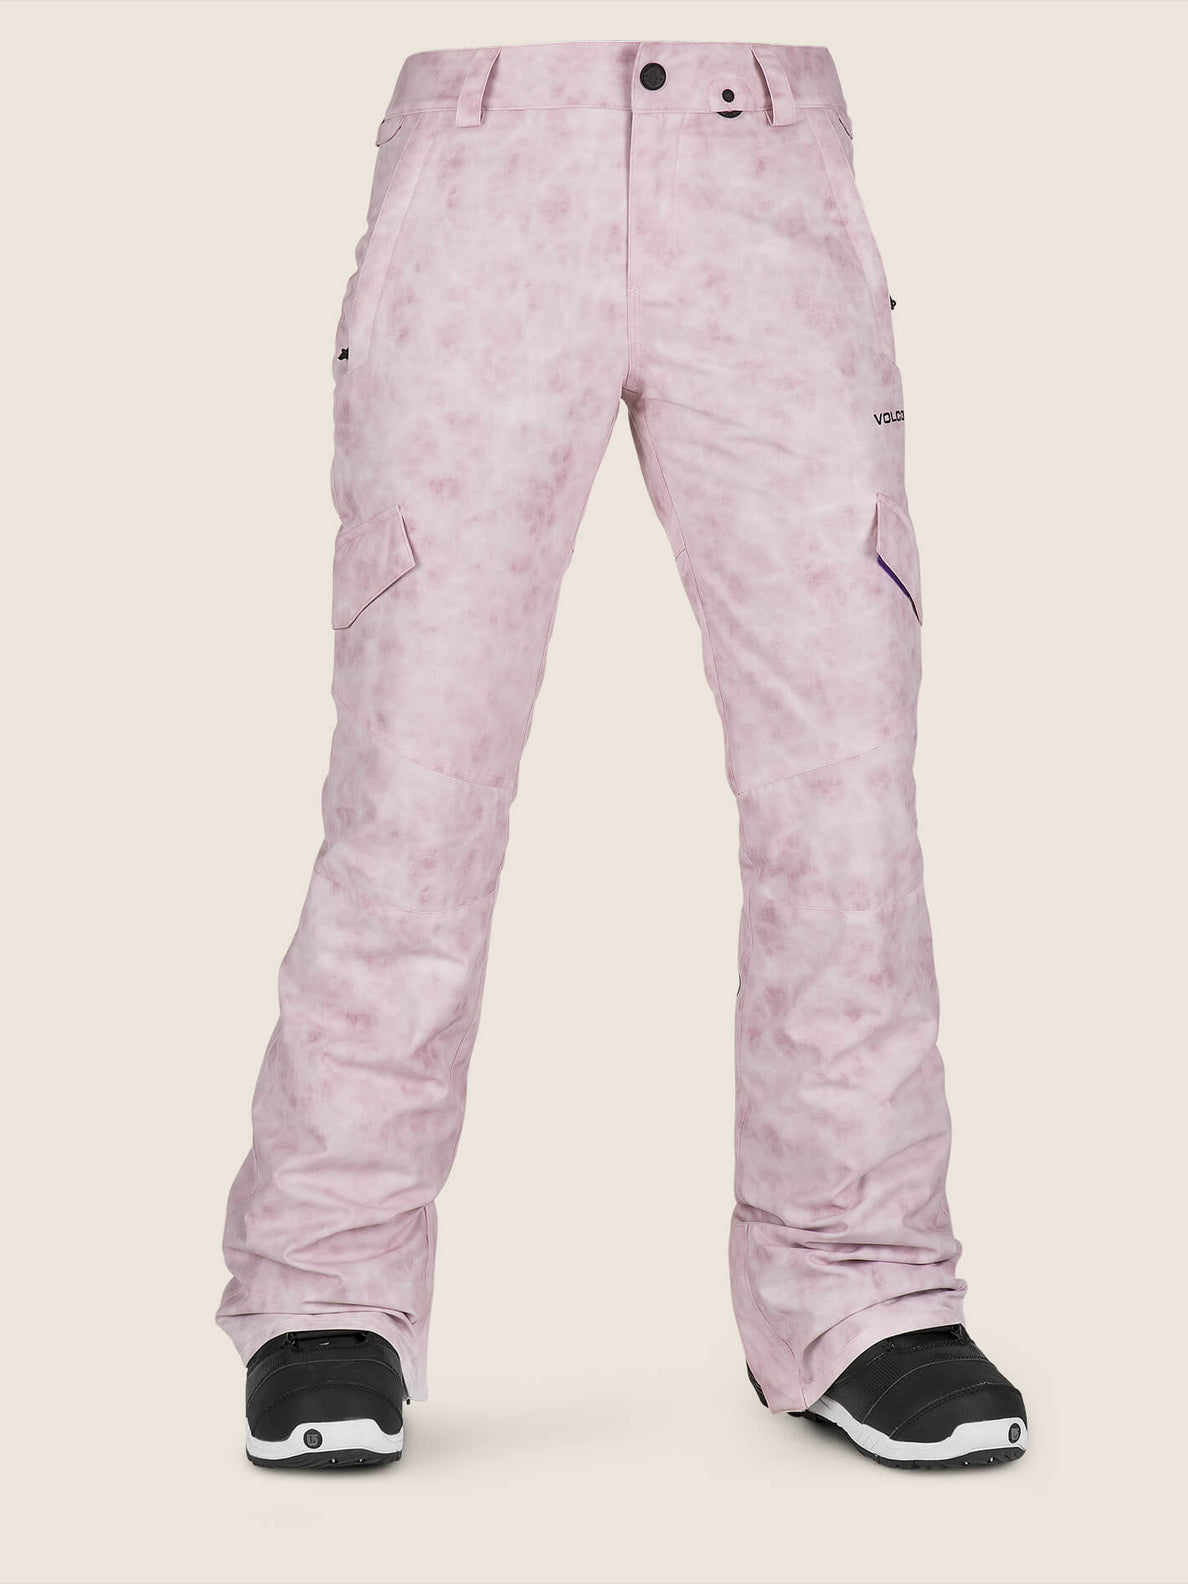 Bridger Insulated Pant In Pink, Front View